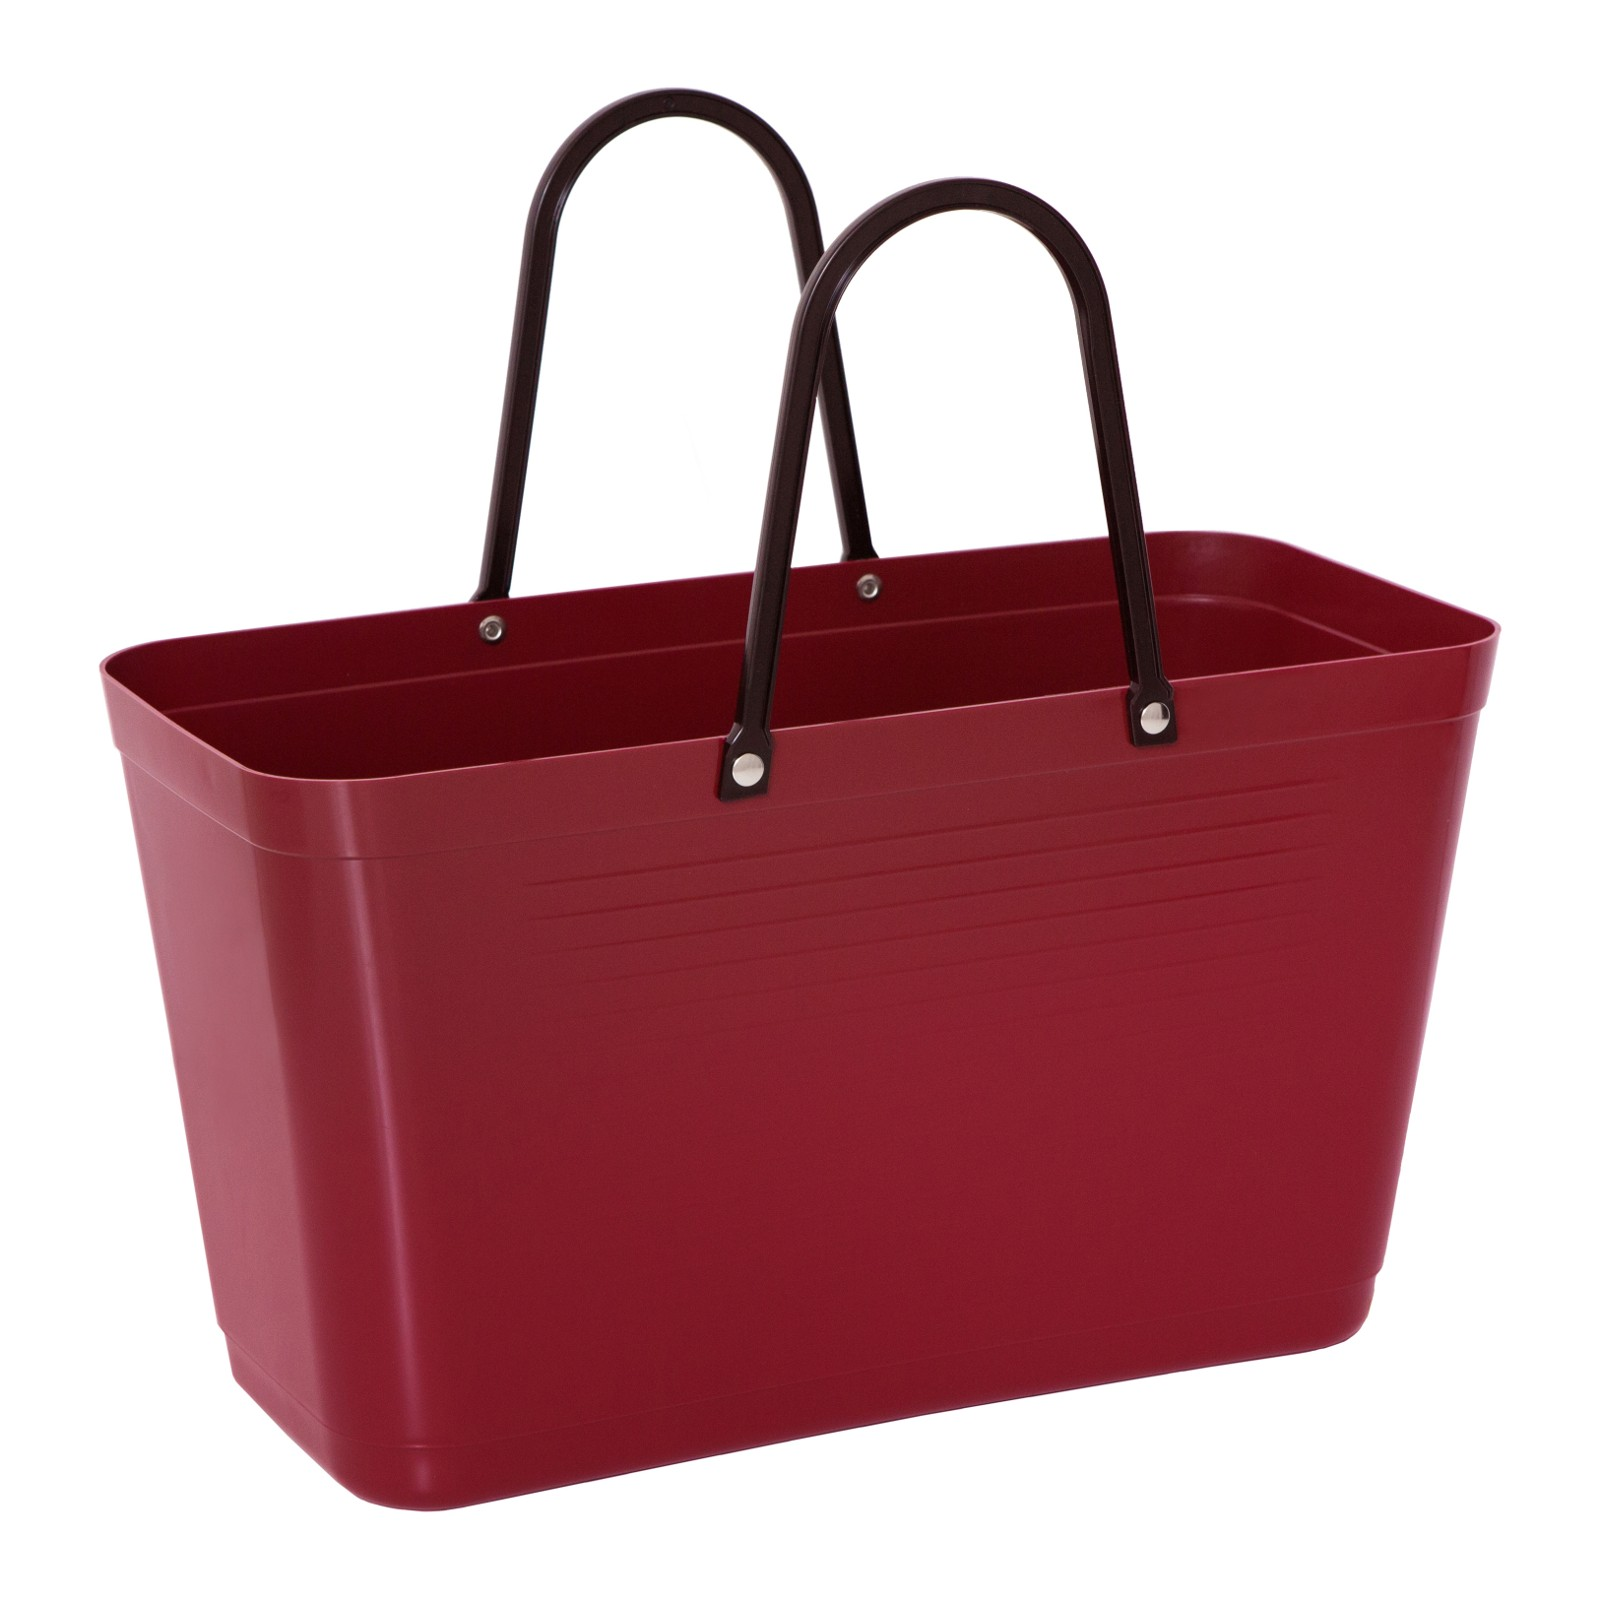 hinza 057-hinza-bag-large-maroon-green-plastic